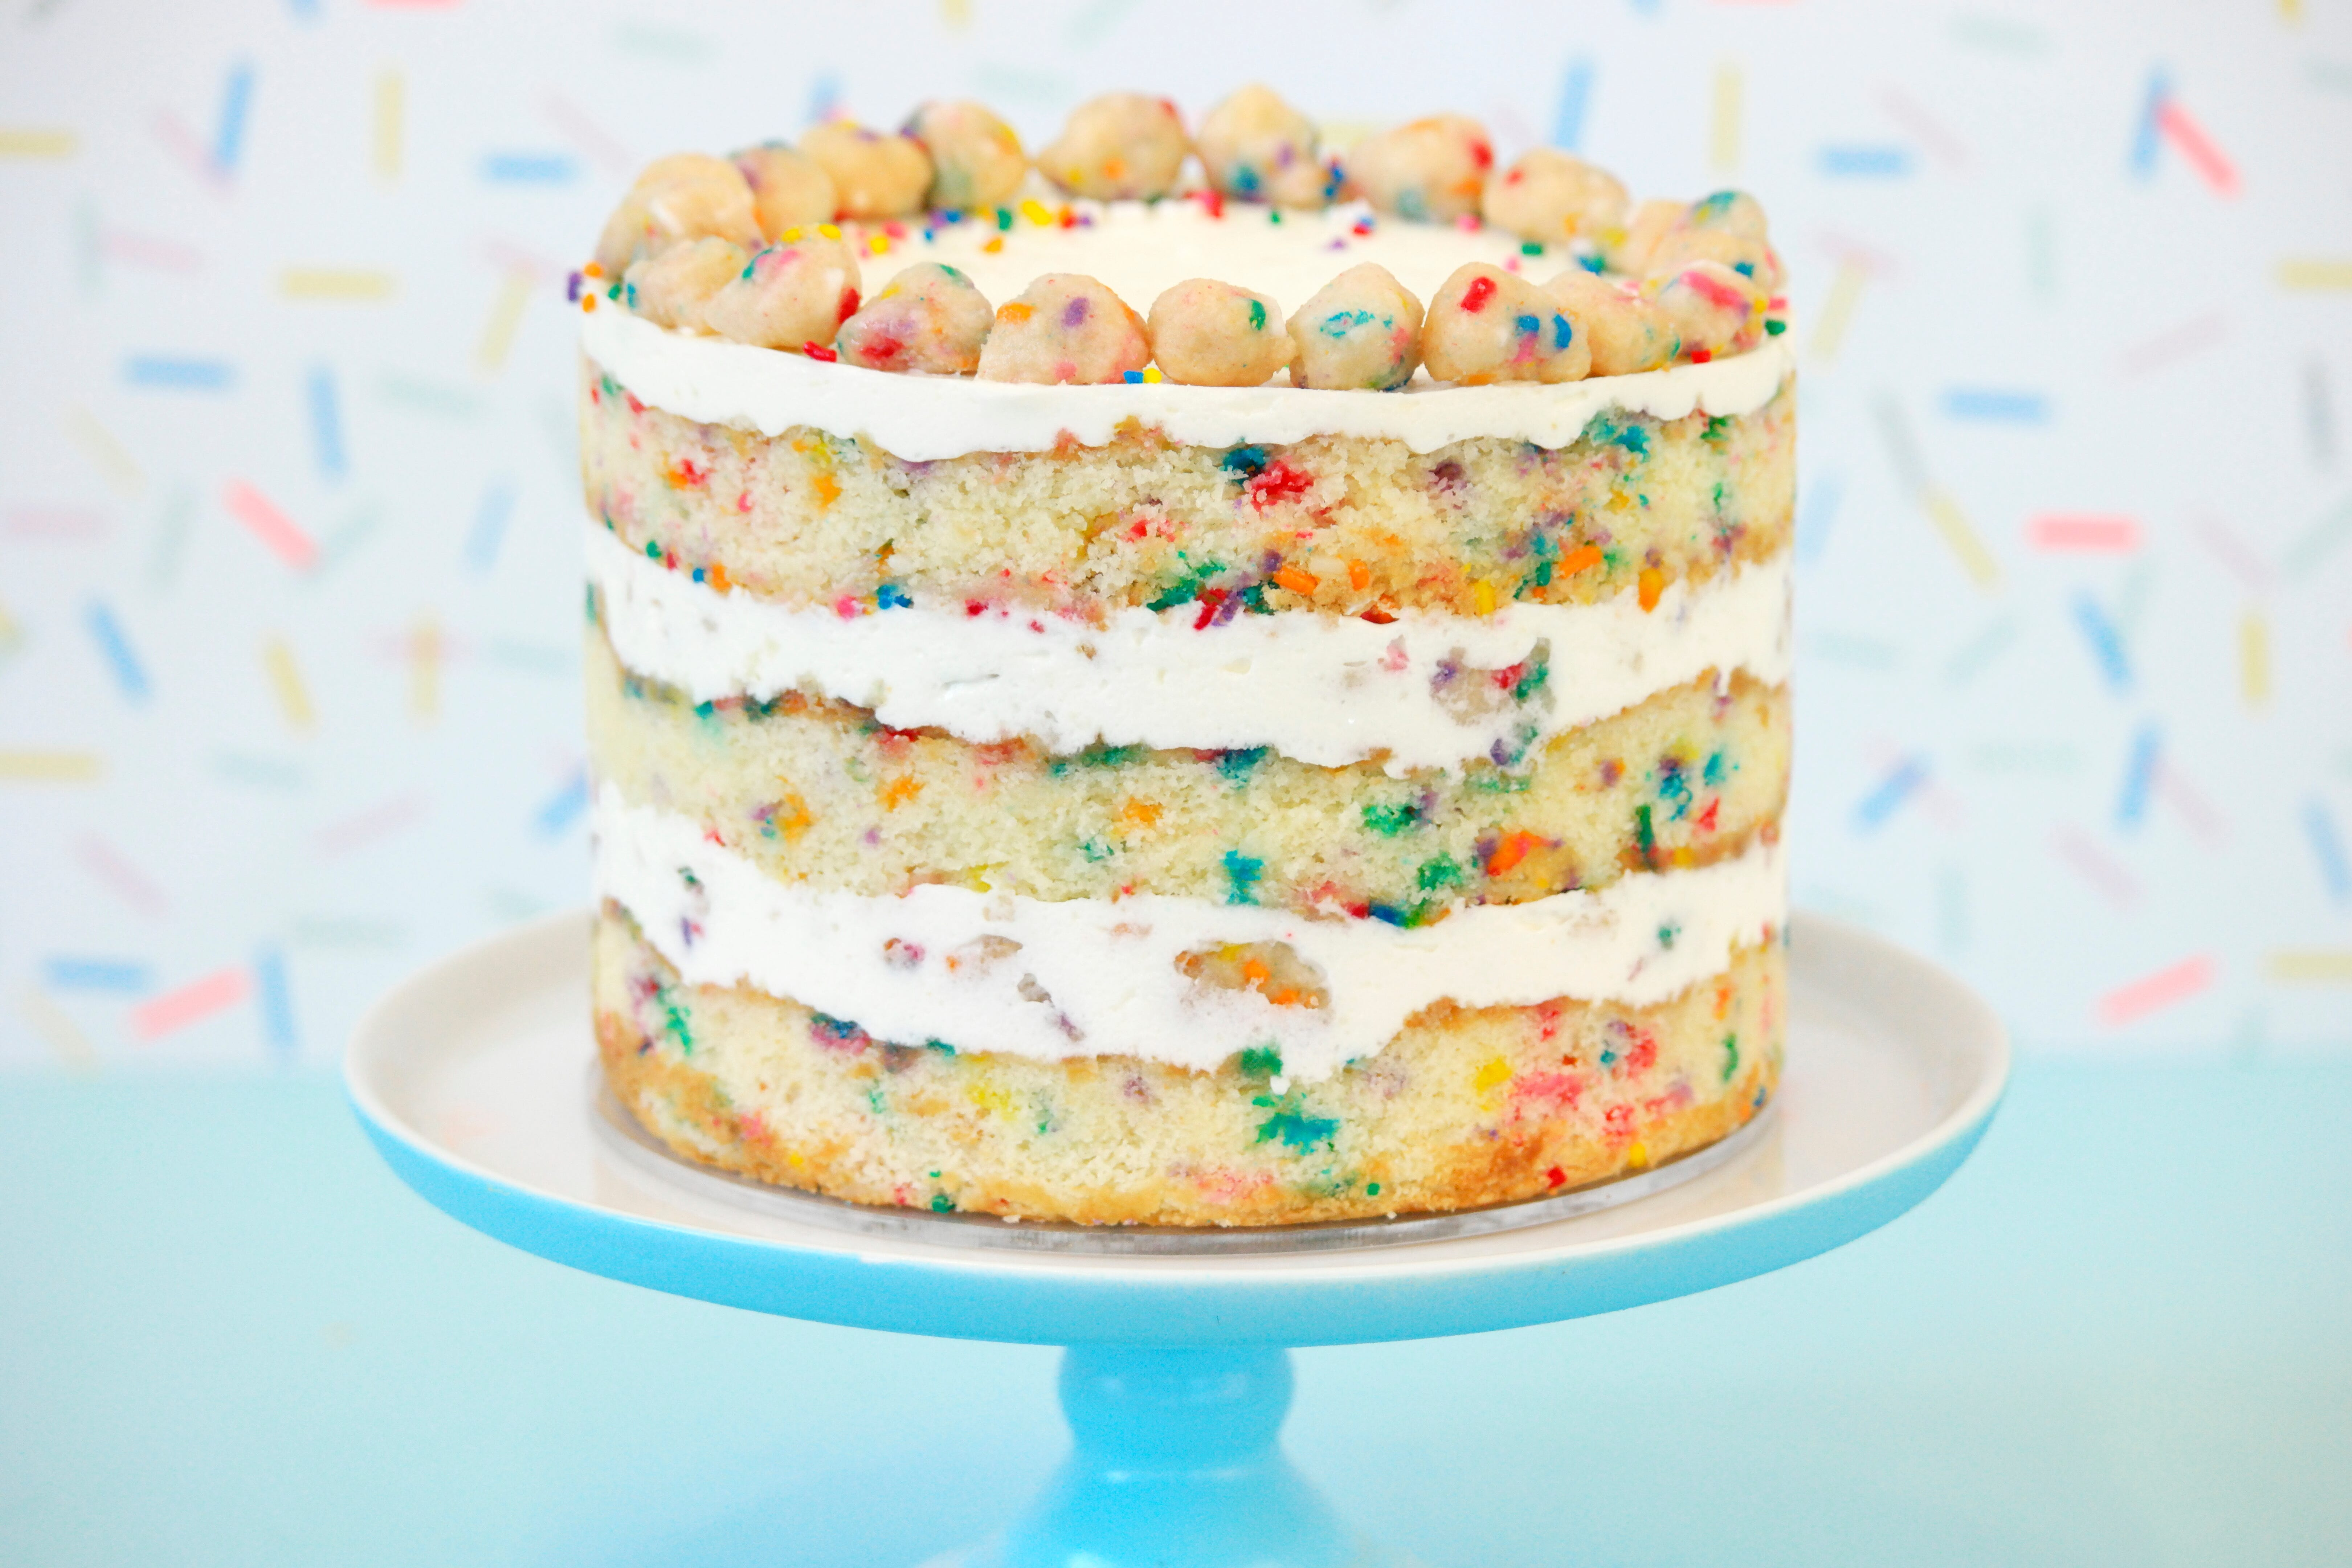 Birthday cakeflavored desserts across America